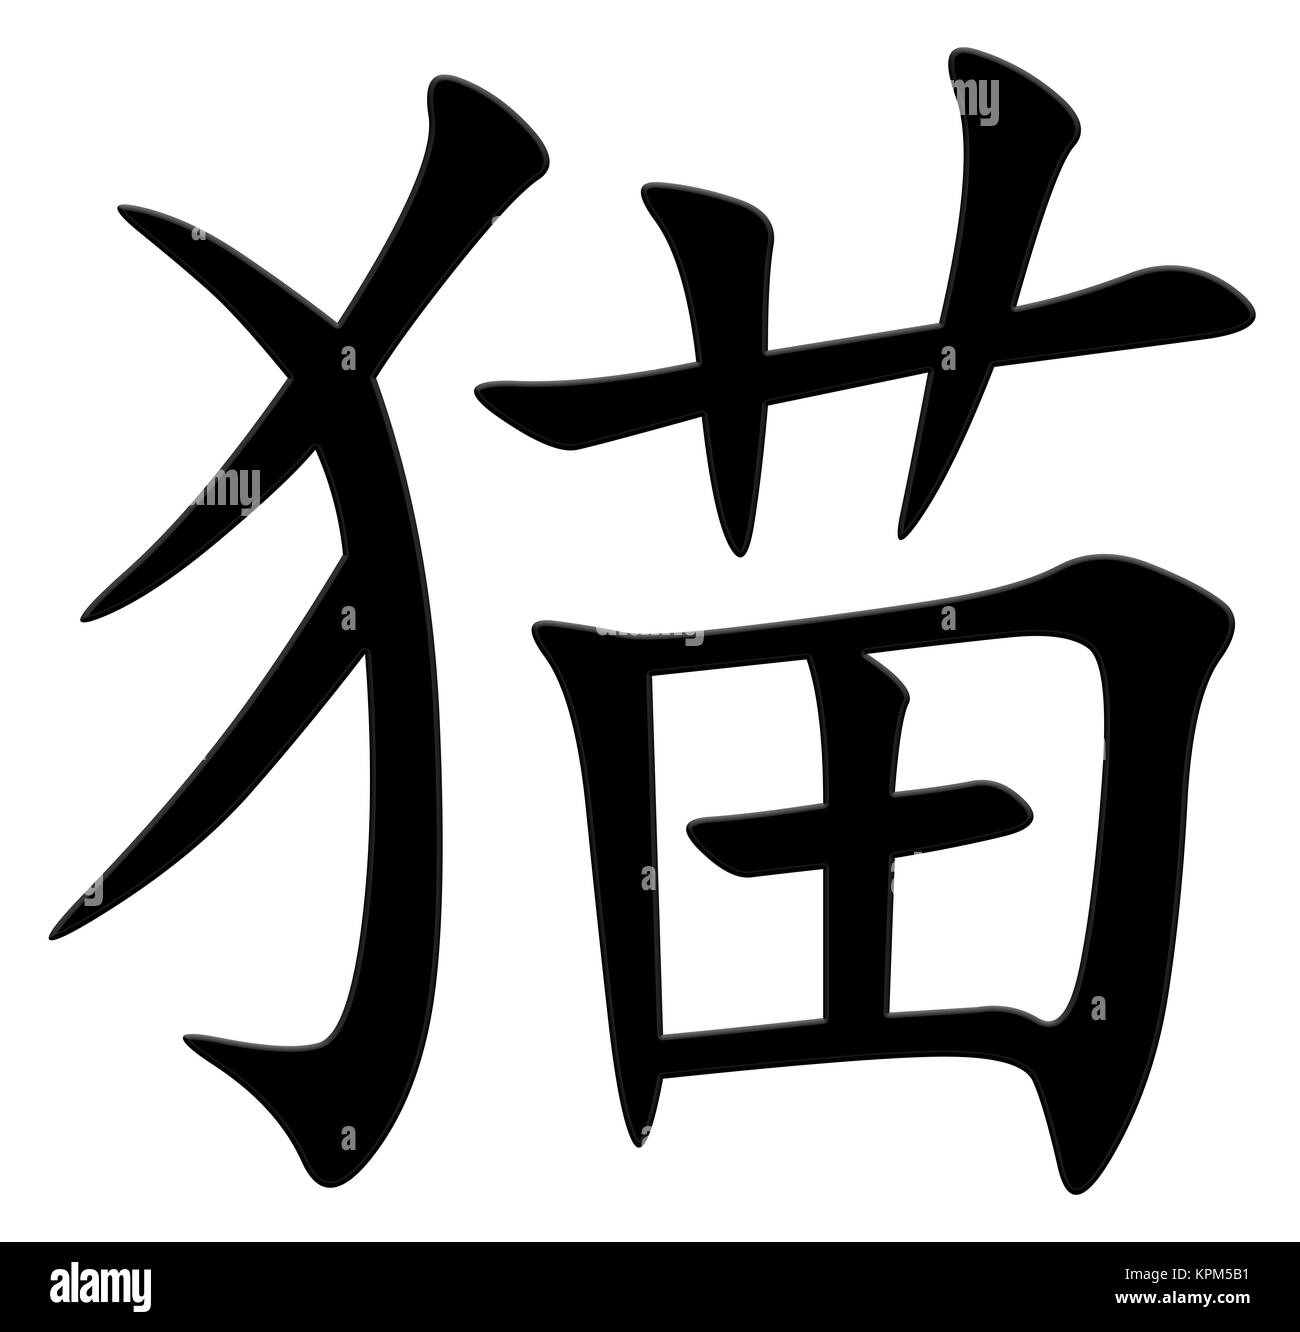 Chinese character for cat stock photo royalty free image chinese character for cat biocorpaavc